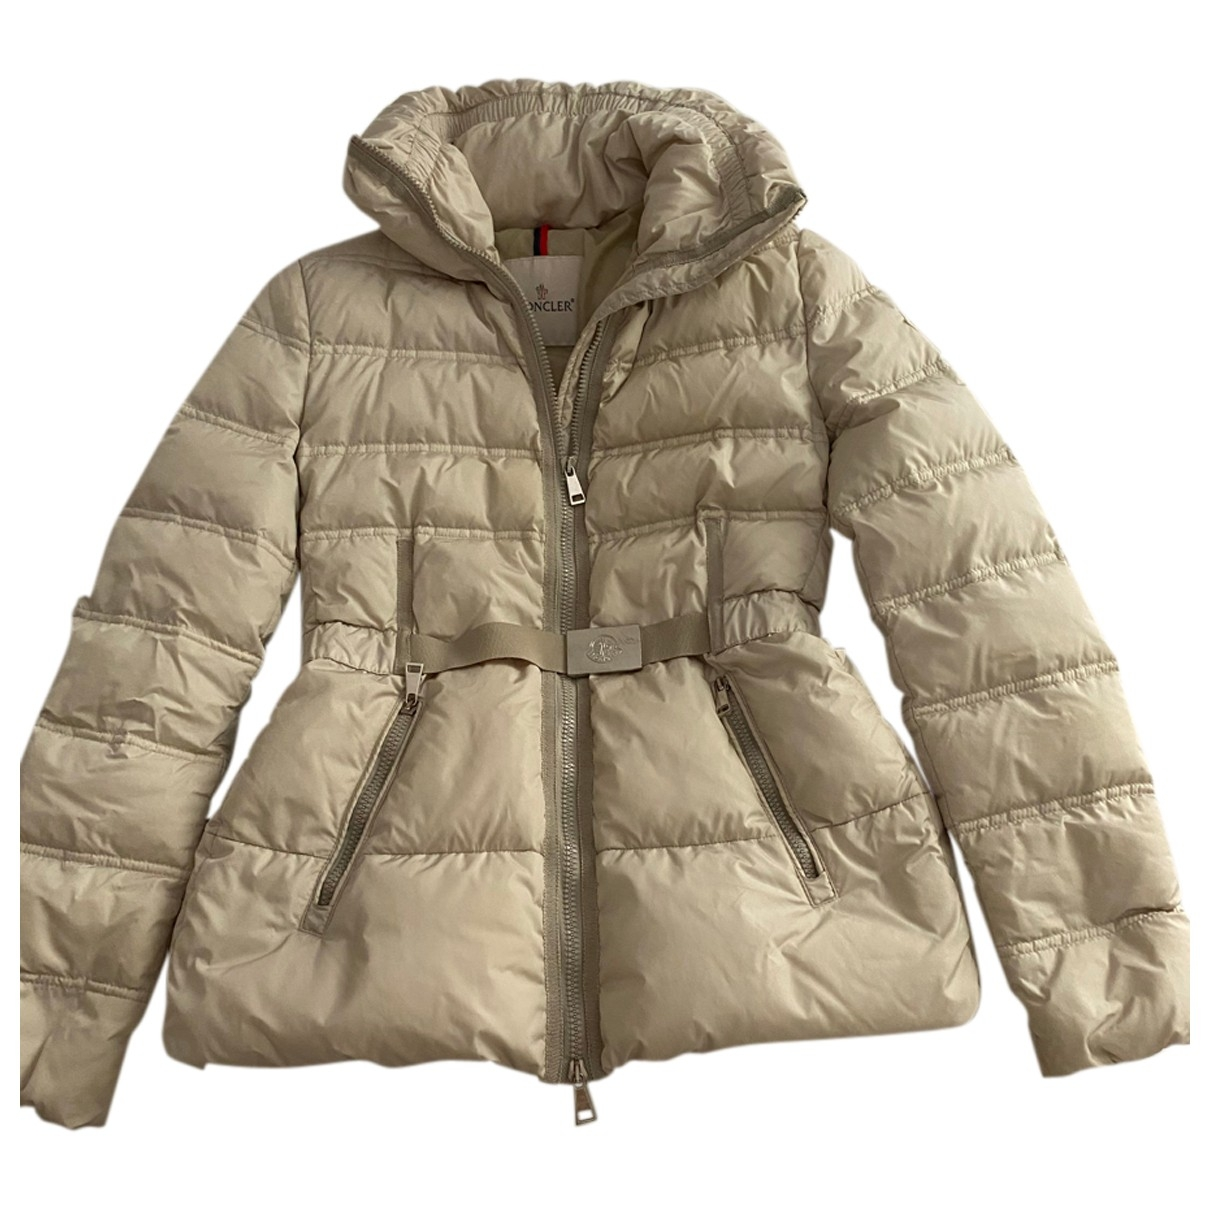 Moncler Classic jacket for Women 1 US